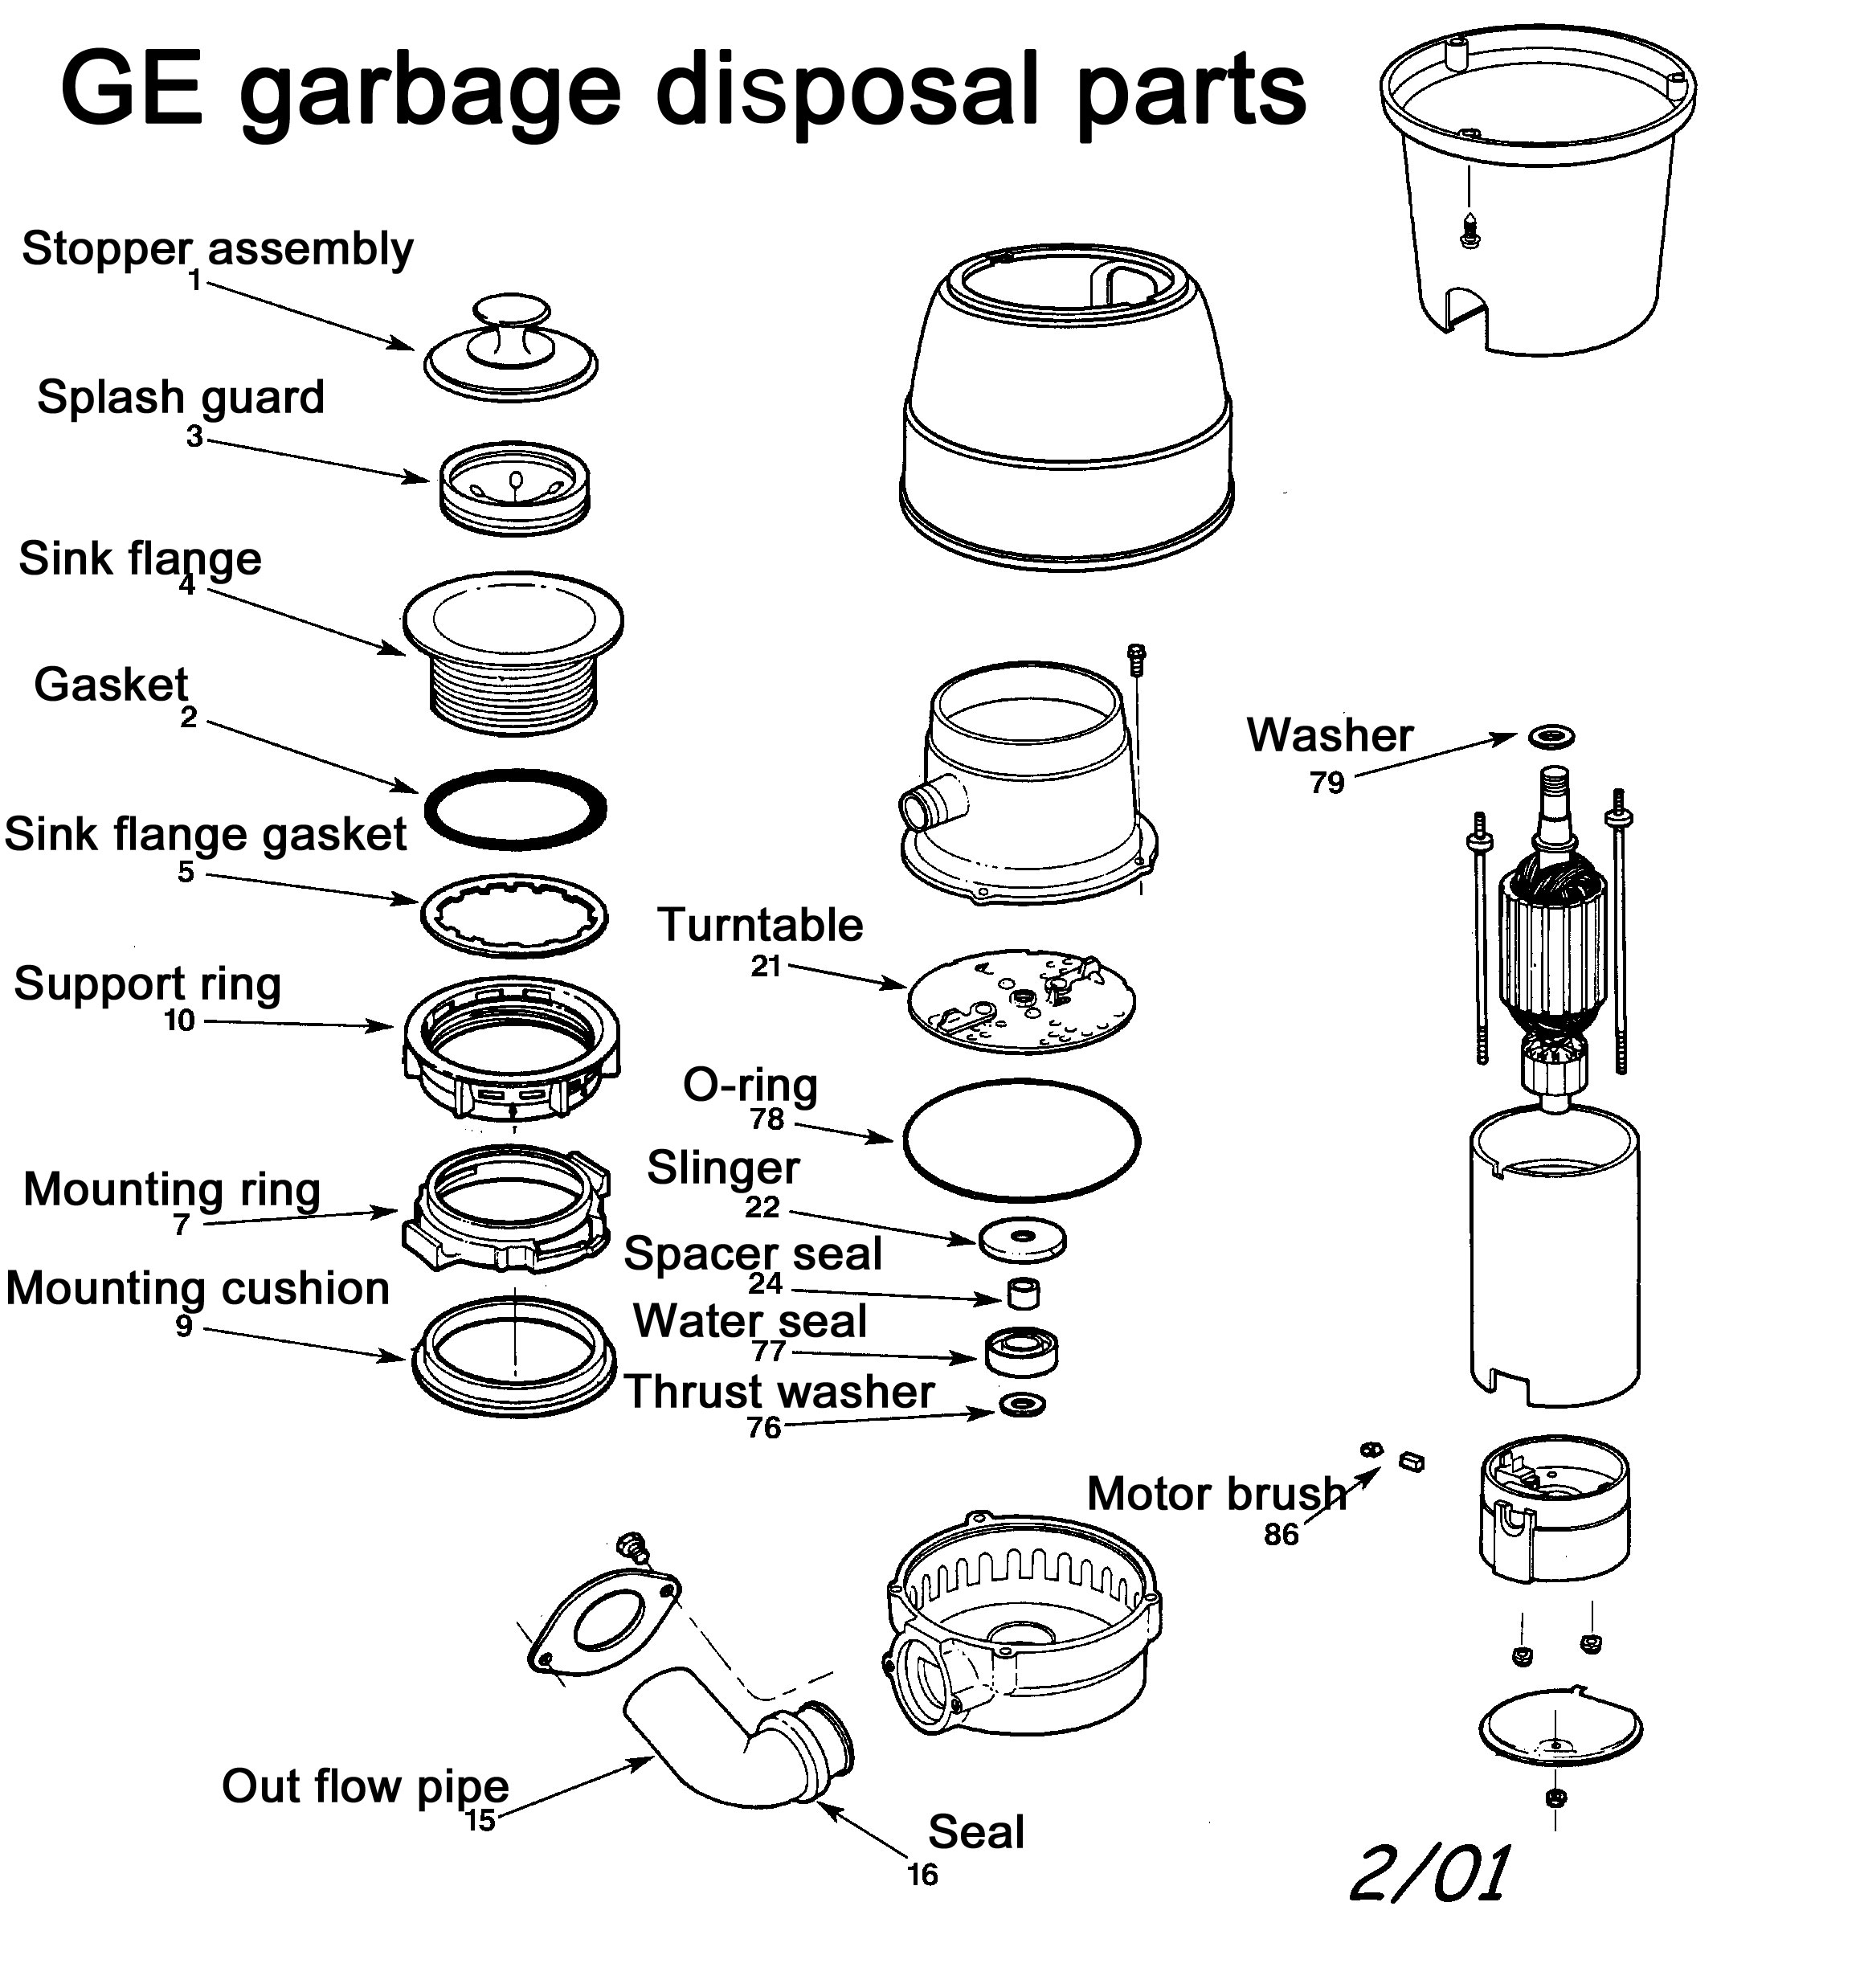 How to repair and install garbage disposal on wiring a garbage disposal diagram how to wire a plug and a switch for a garbage disposal Wiring an Electric Stove Diagram